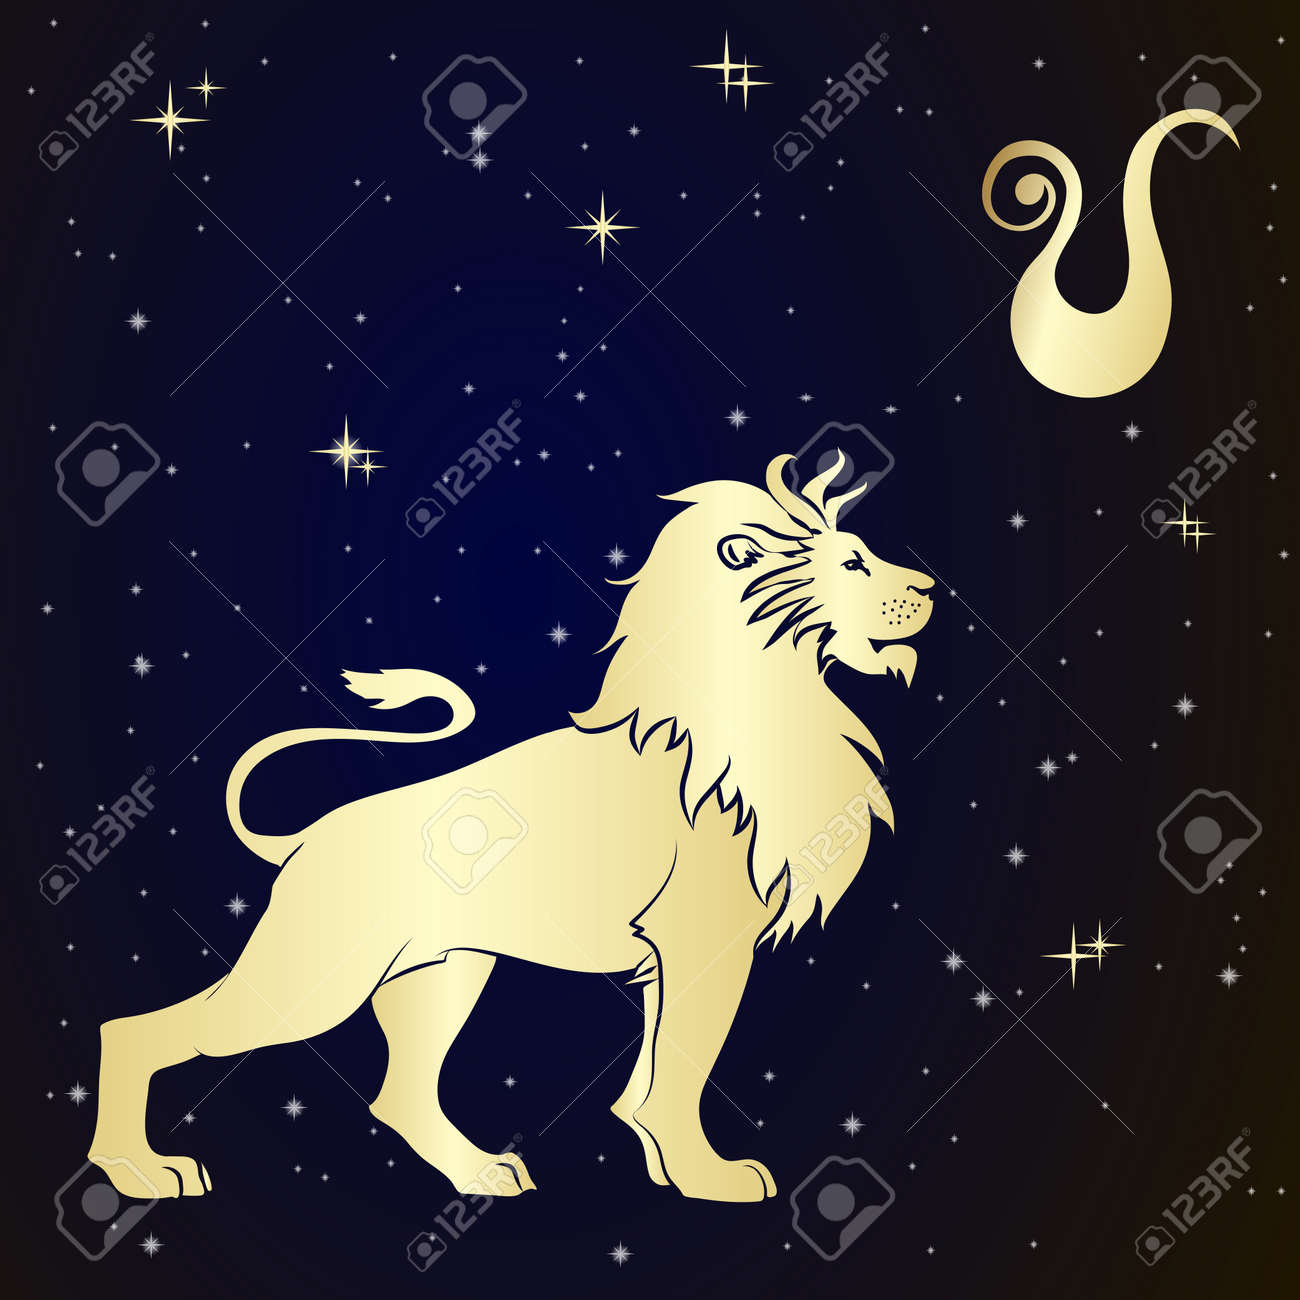 Sign of the zodiac Leo is the starry sky, vector Illustration. Contour icon. - 48498822